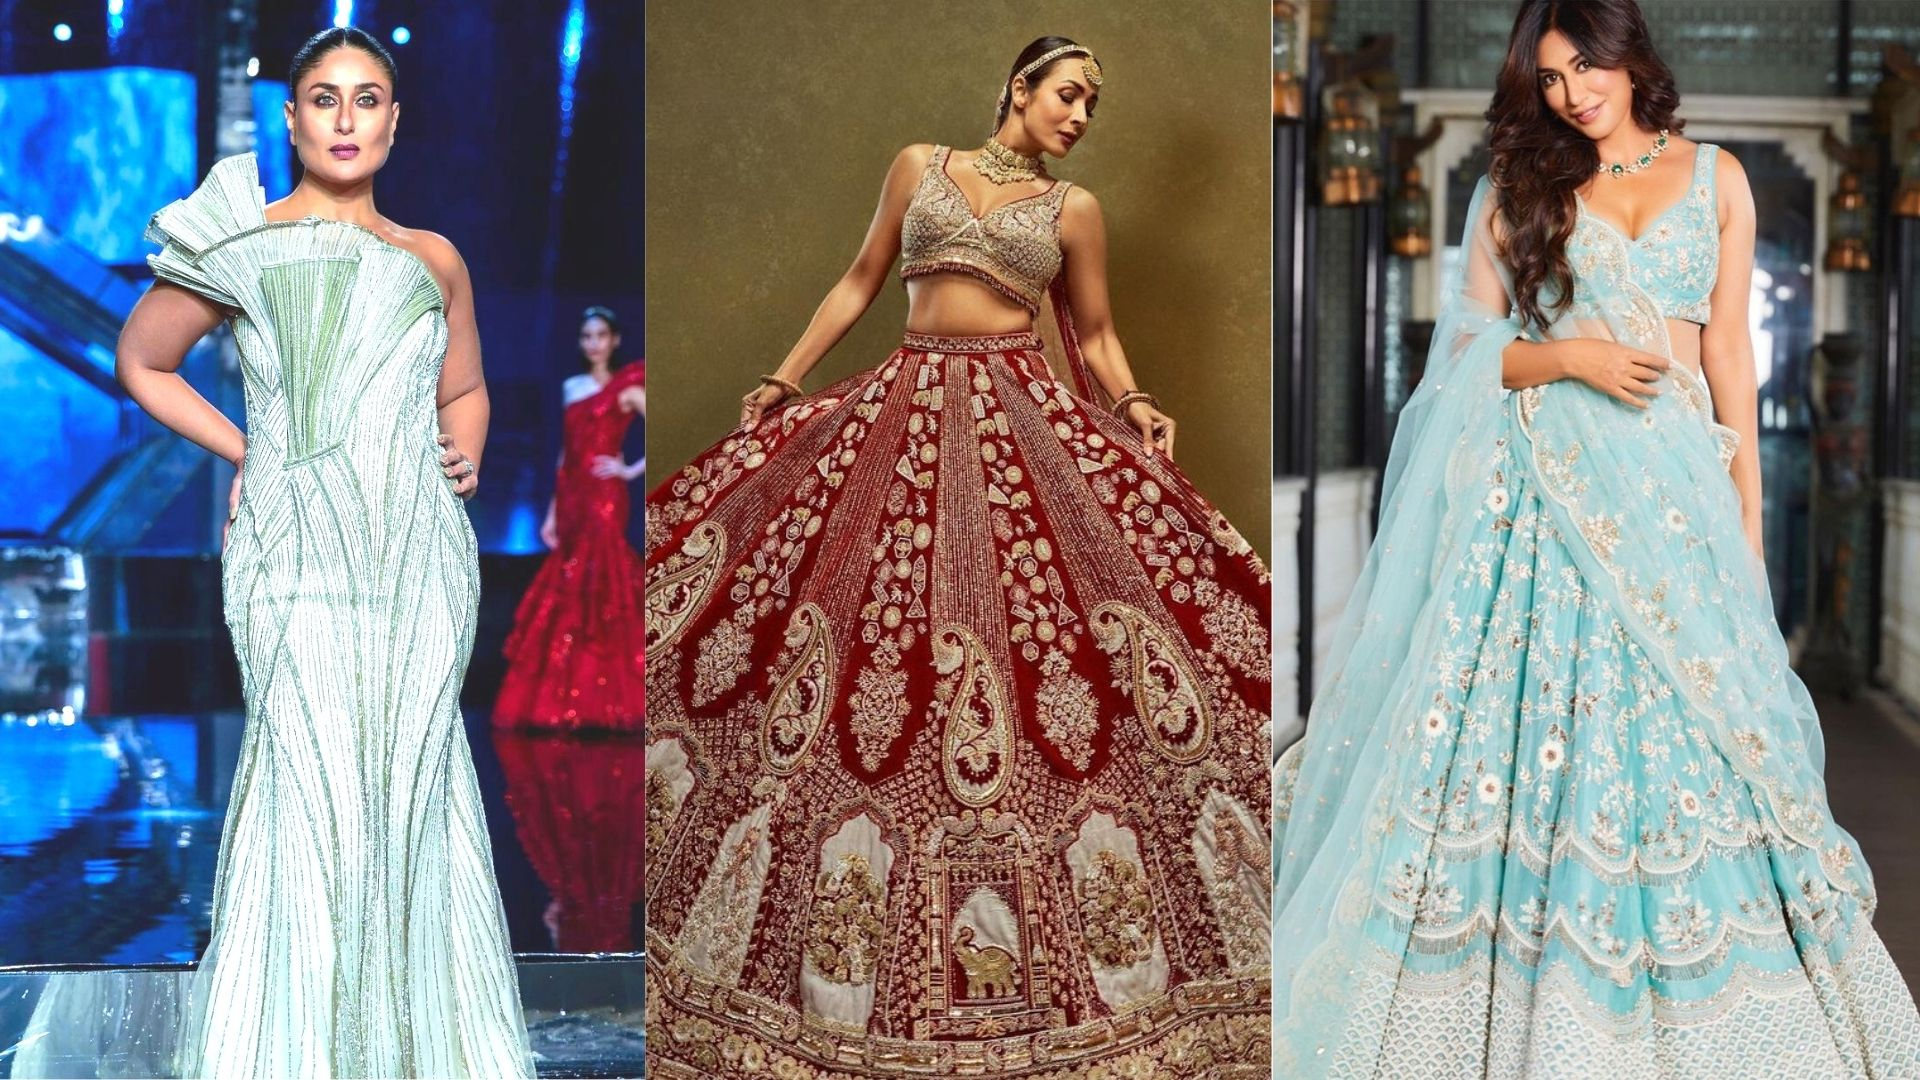 Lakme Fashion Week Grand Finale: Kareena Kapoor Khan, Malaika Arora, Chitrangda Singh And Others Conclude The Event On A Glitz And Glamour Note